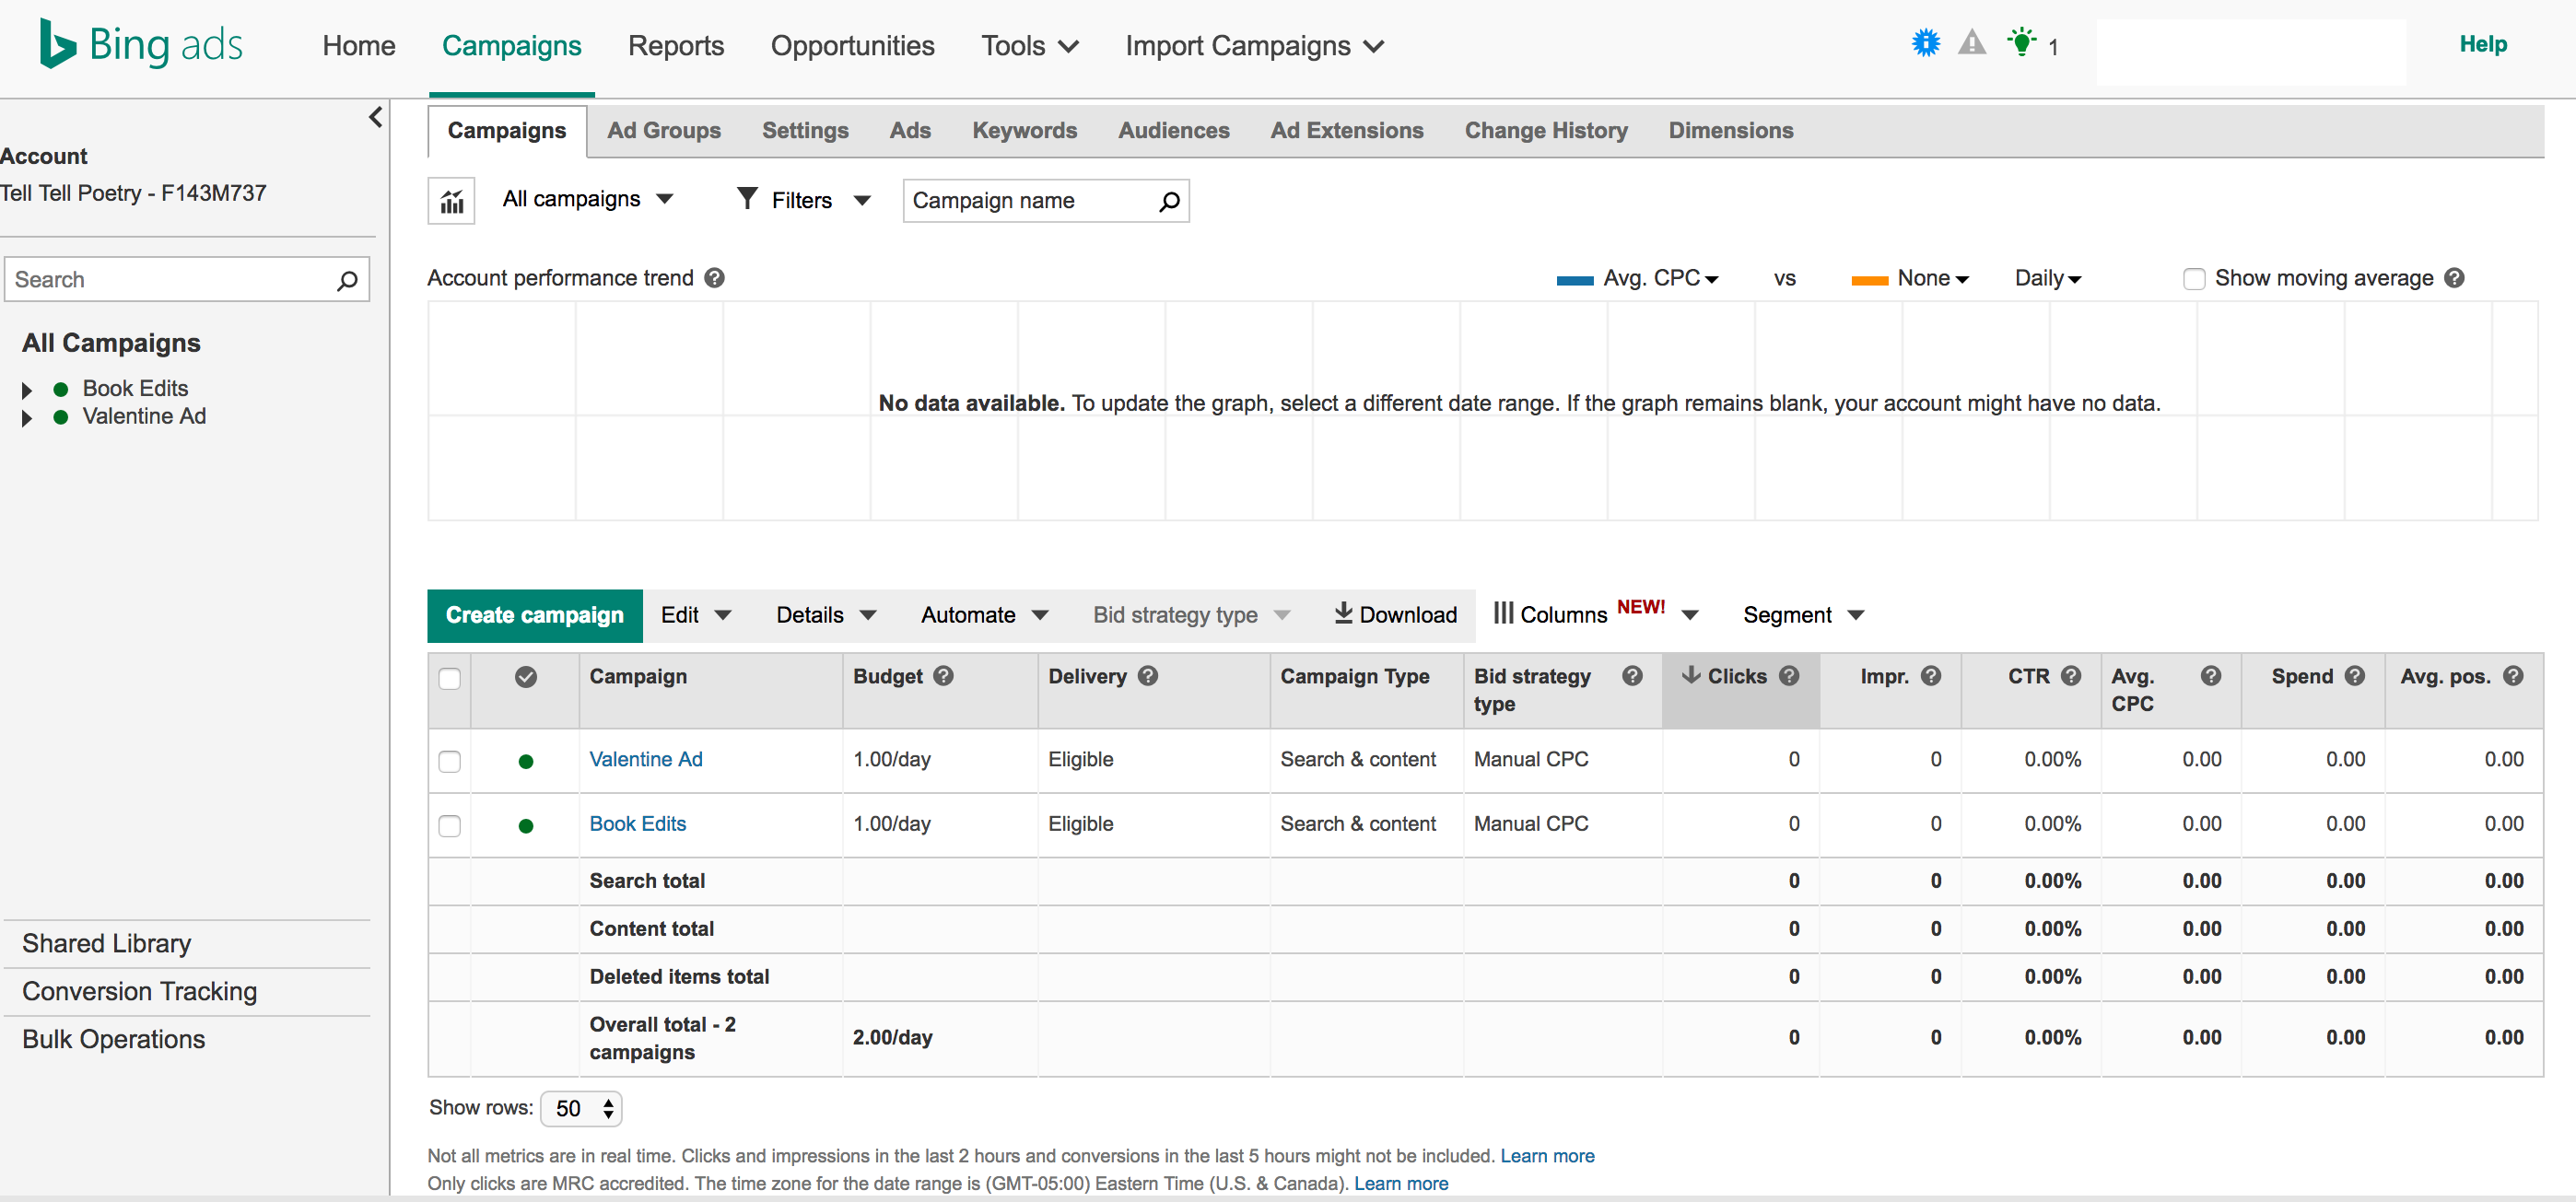 Enables marketers to track and monitor campaigns, clicks, CTR, spend, and budget